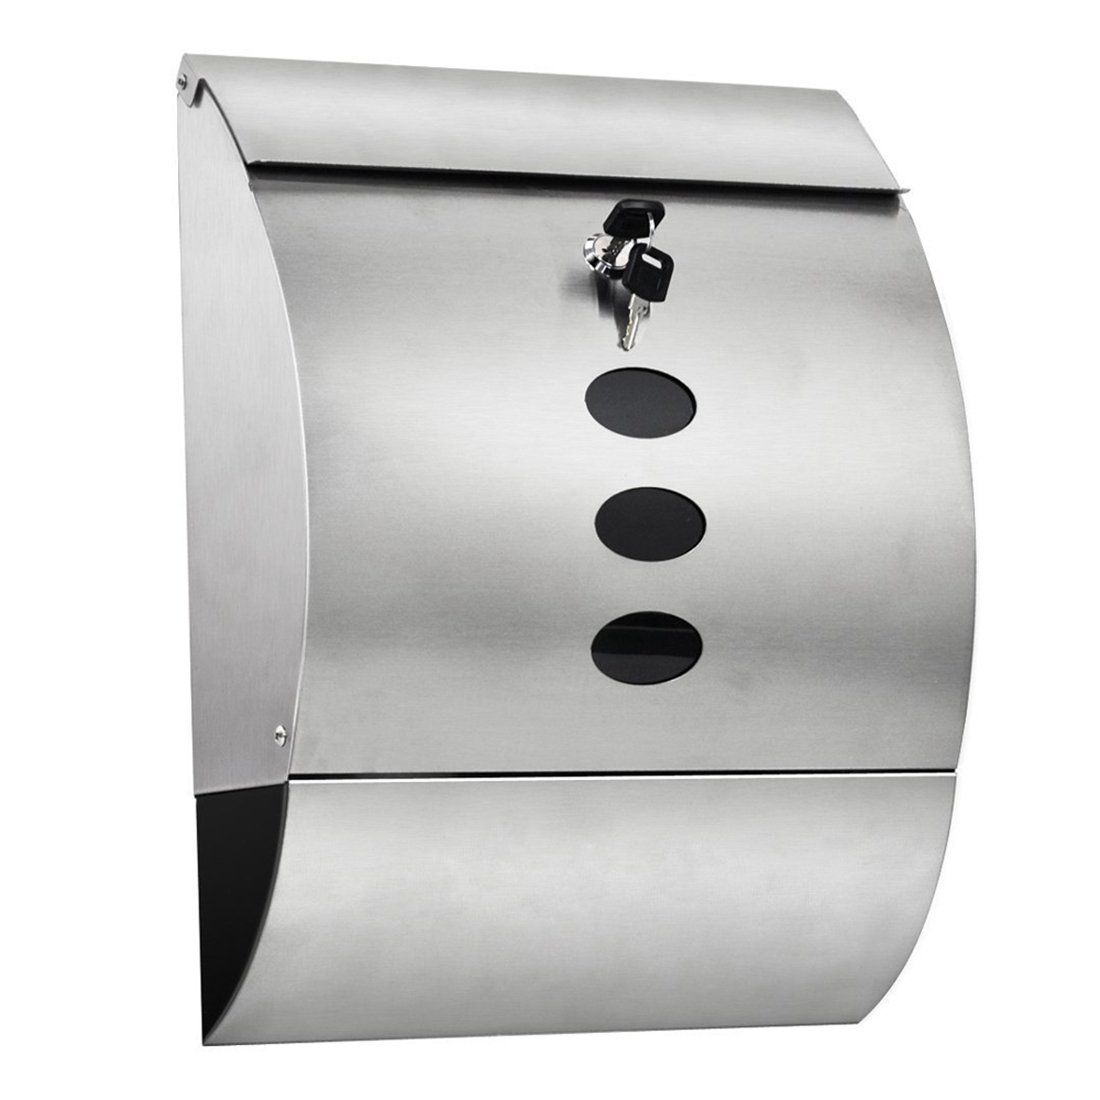 Waterproof Mailbox - TOOGOO(R)Waterproof Stainless Steel Lockable Mailbox & Newspaper Holder Outdoor Mail/Post/Letter Box Silver